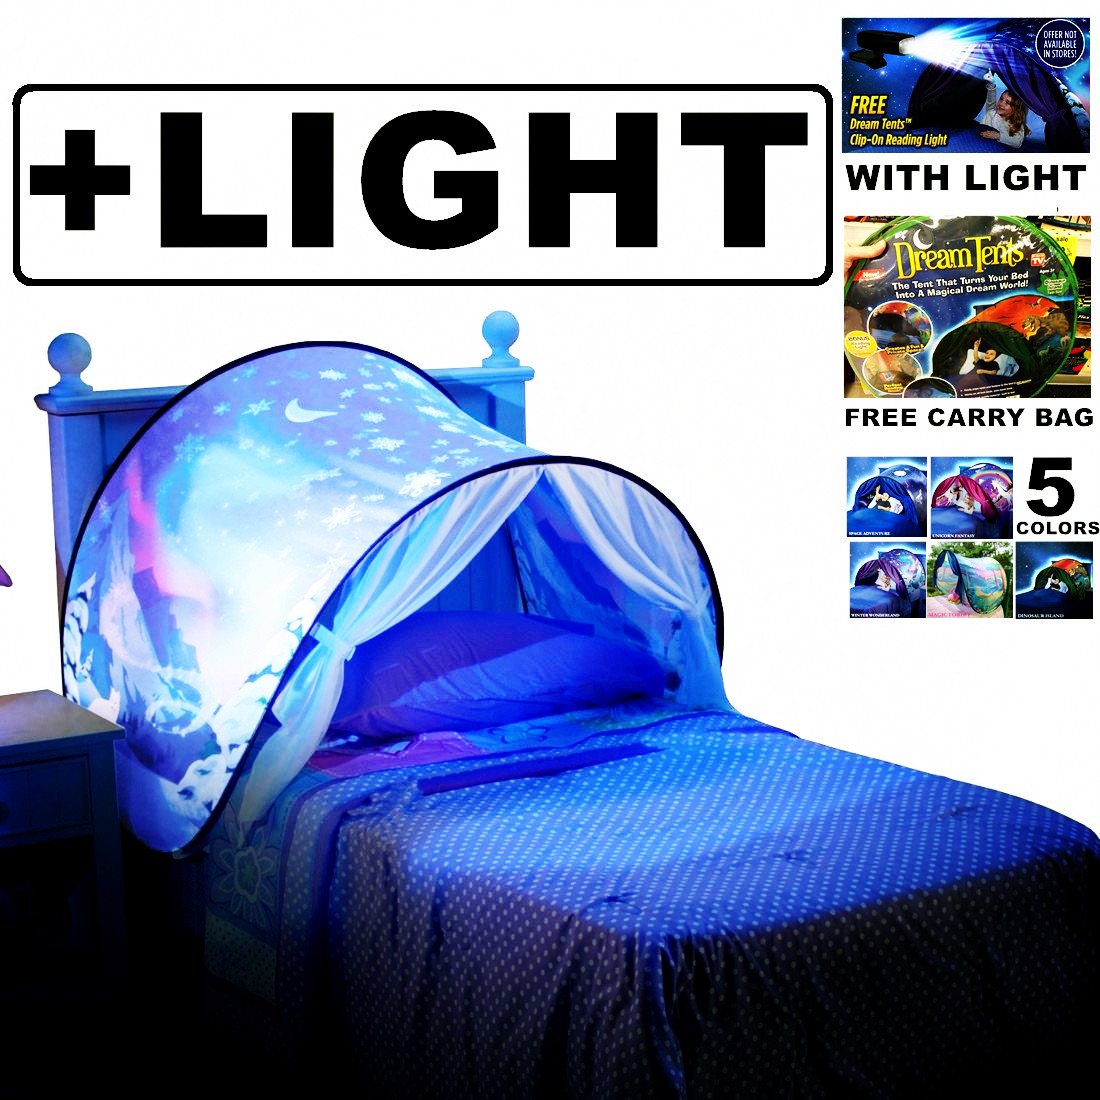 Dream Tents With Light Twin Size Children Kid Winter Wonderland Magic Forest Space Adventure Dinosaur Island Unicorn Fantasy цена и фото